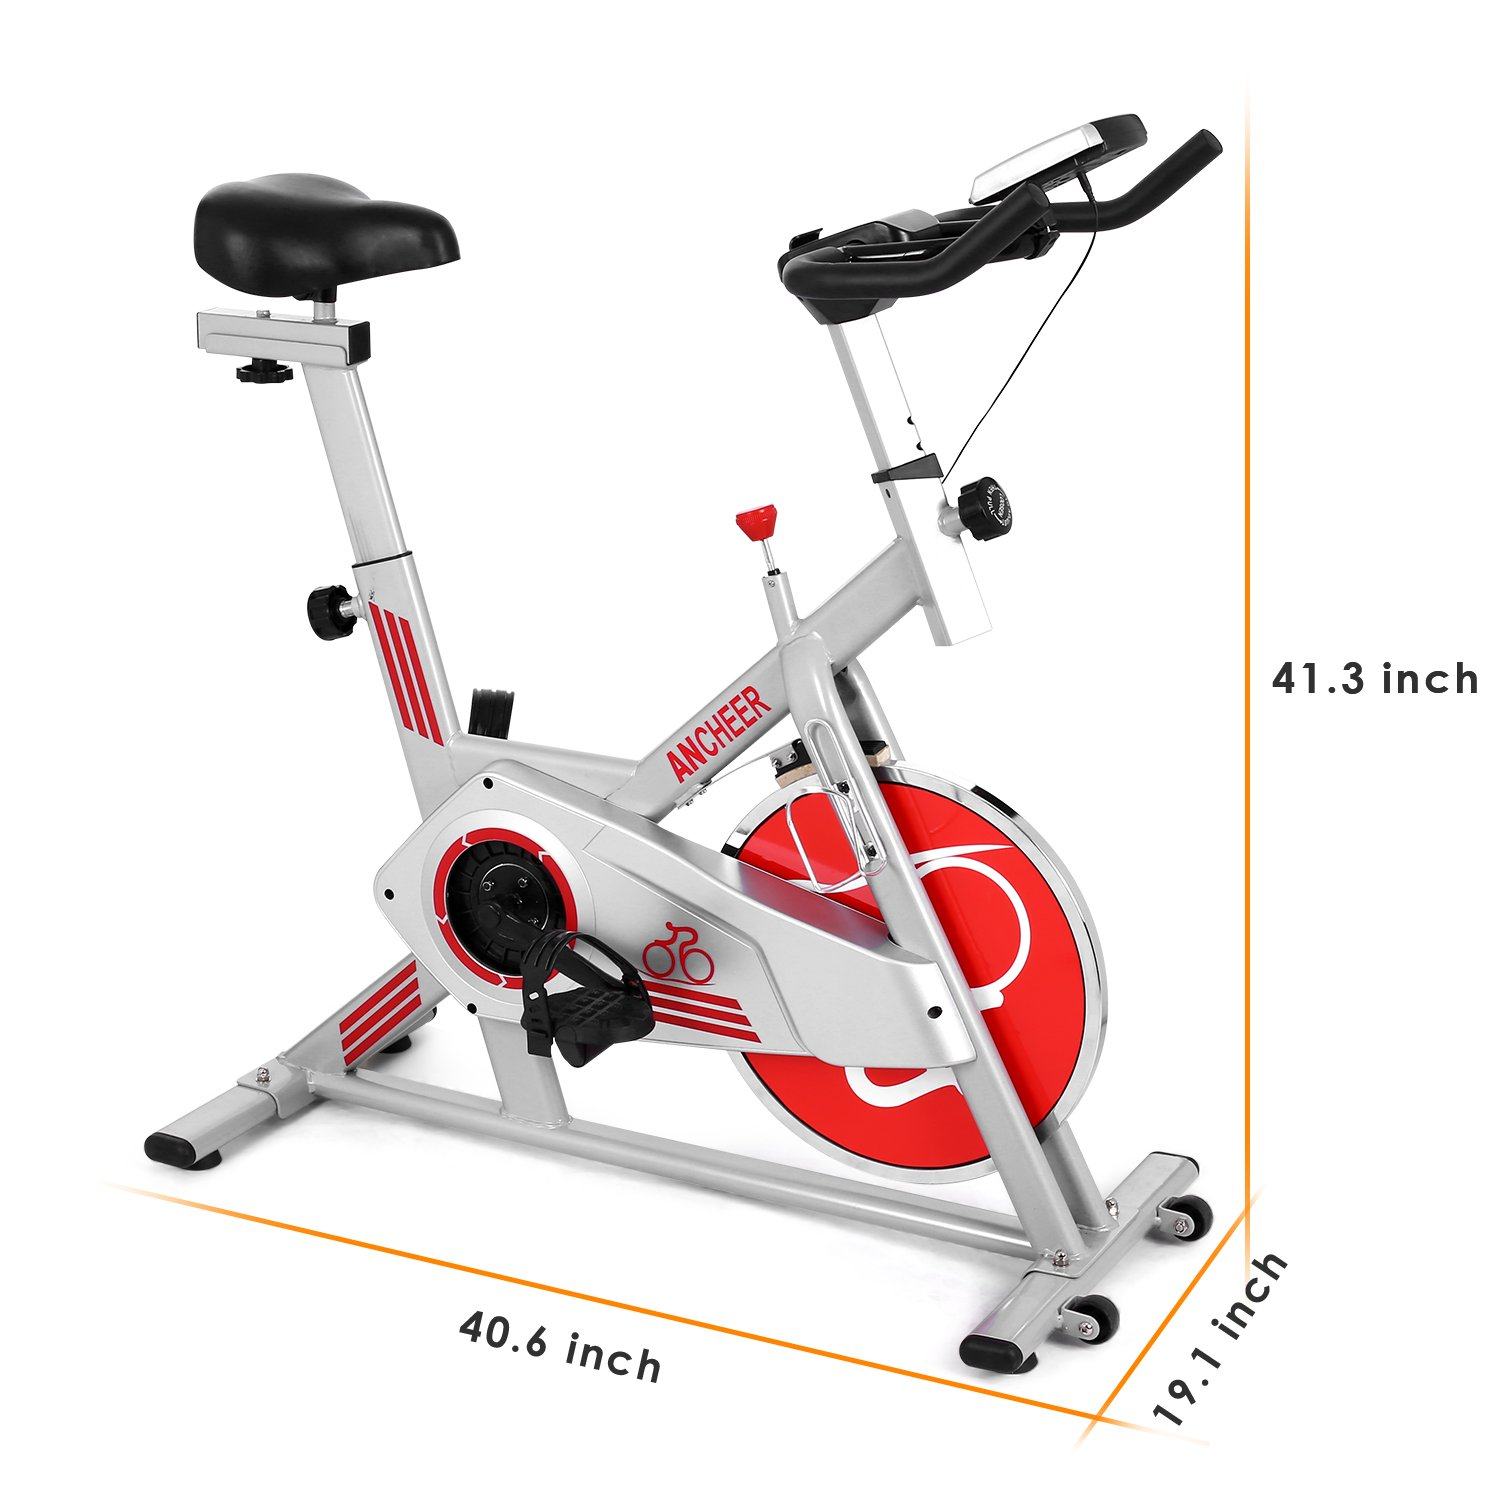 ANCHEER Indoor Cycling Bike, Smooth Quiet Belt Drive Indoor Stationary Exercise Bike (Model: ANCHEER-M6008) by ANCHEER (Image #1)